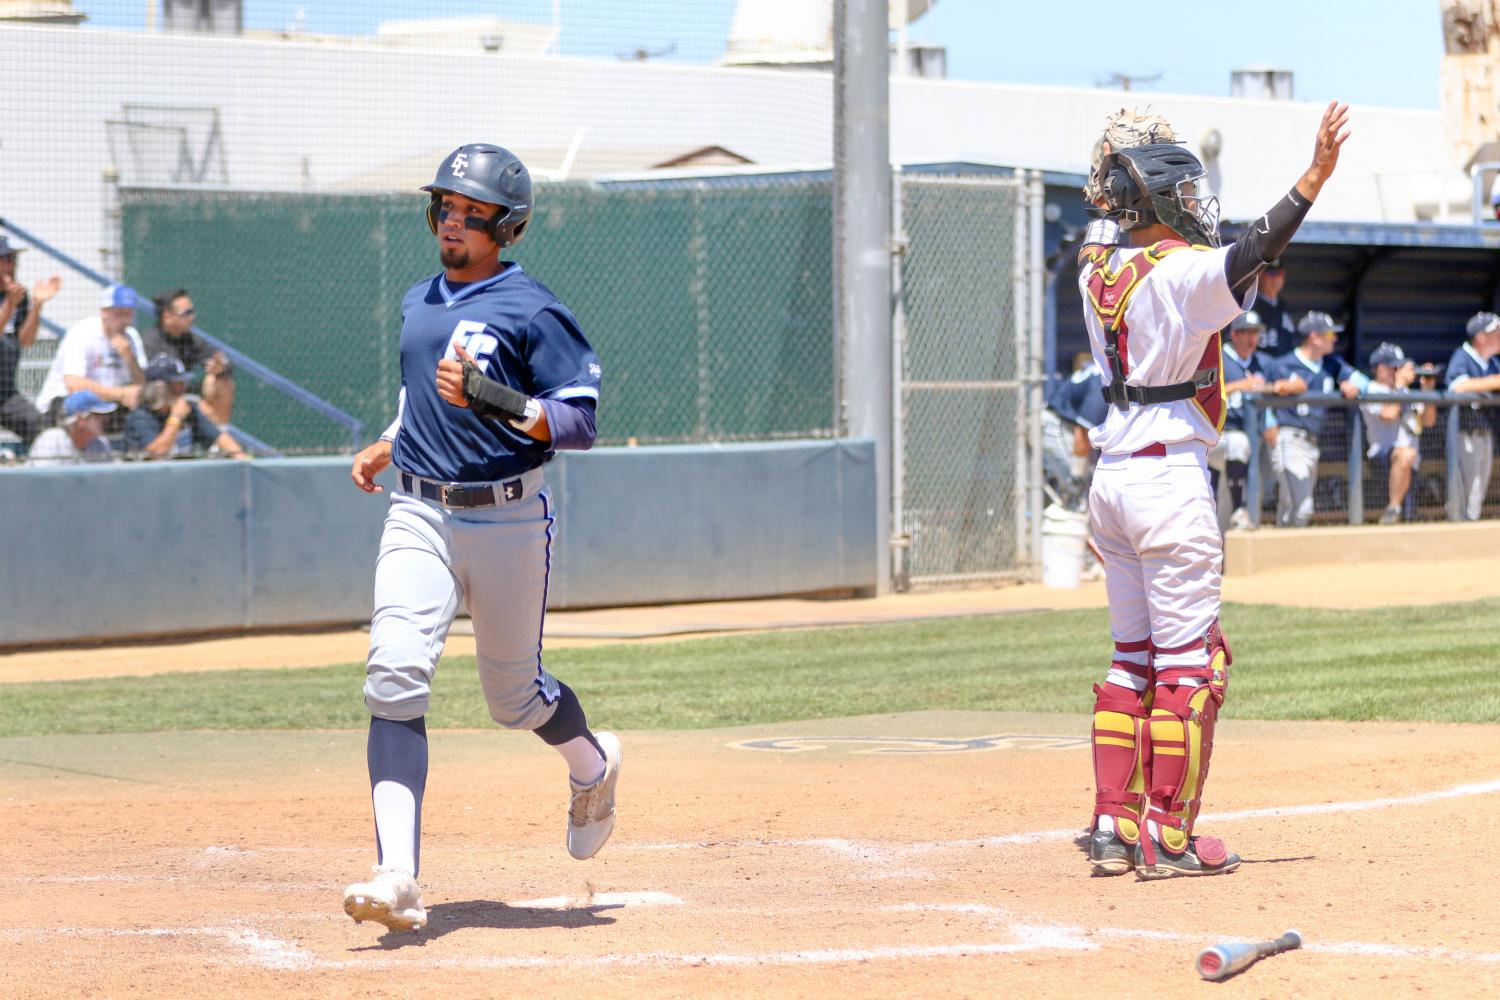 El Camino outfielder Noah Barba crosses home plate during the Warriors game against Pasadena City College on Saturday, May 13 at Warrior Field. Photo credit: Jorge Villa